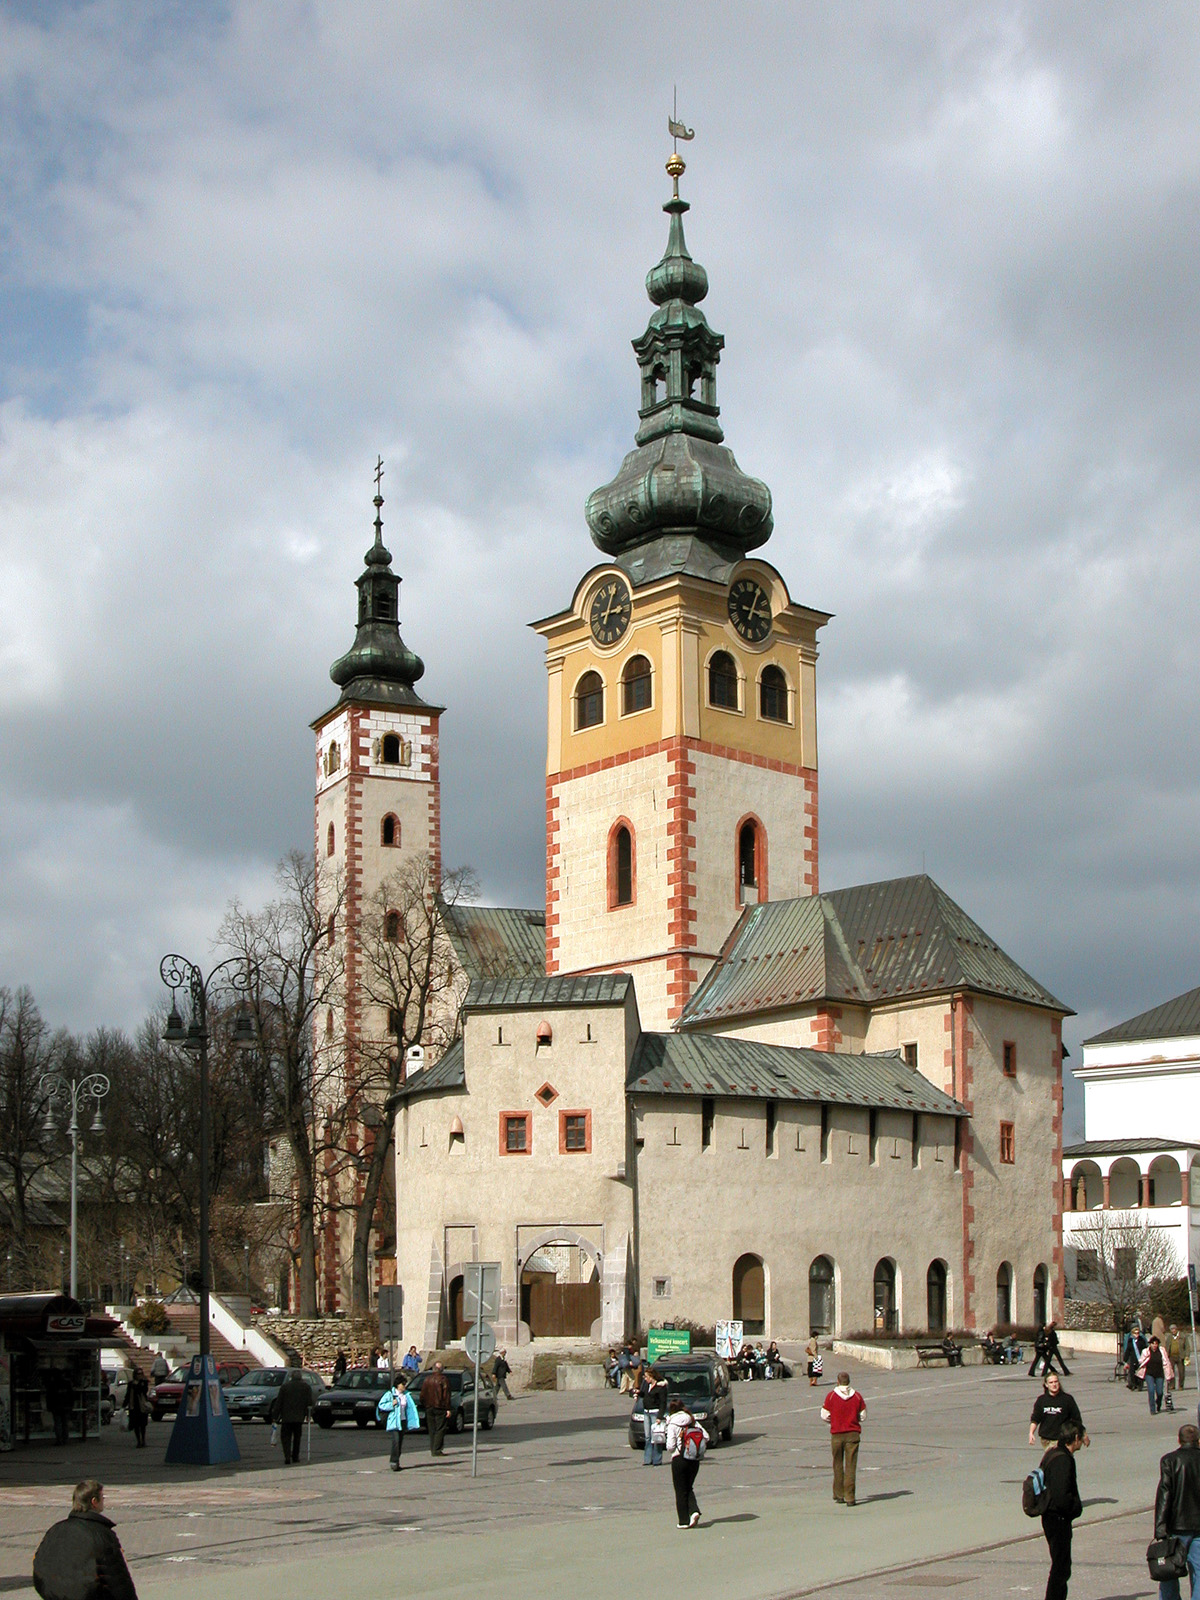 City castle and church in Banská Bystrica (Monuments Board of the SR Archives, photo by Peter Fratrič)